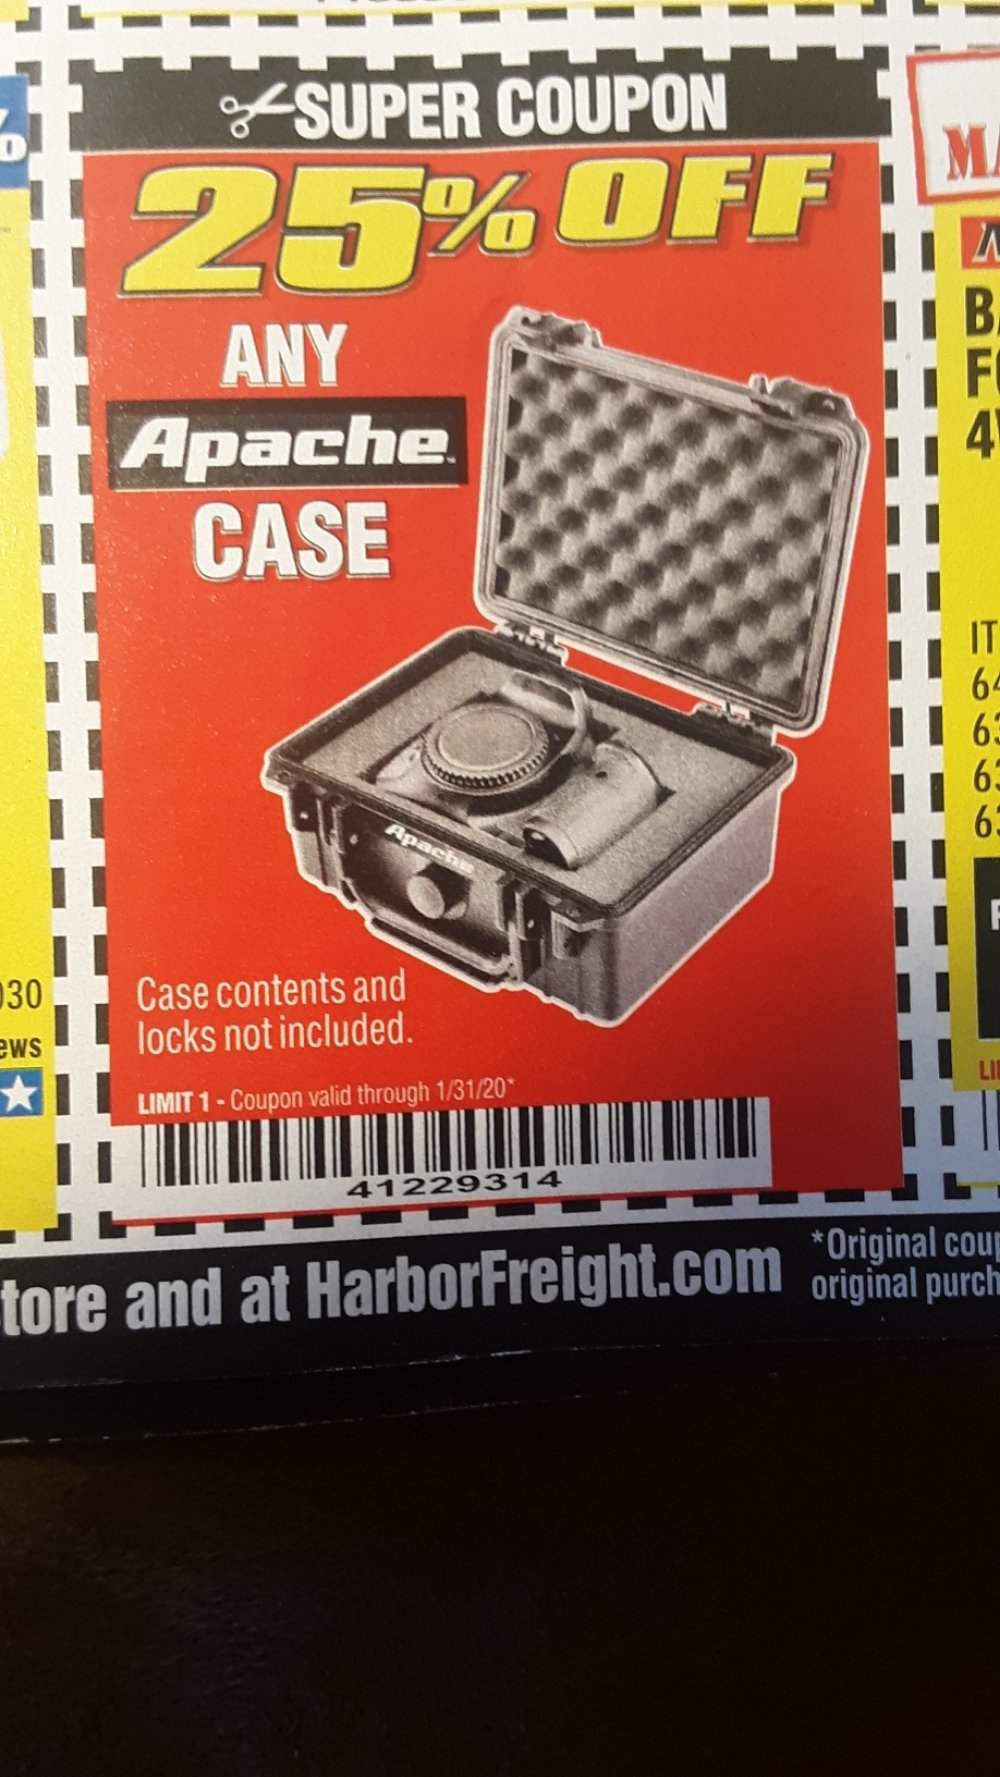 Harbor Freight Coupon, HF Coupons - 25 percent off Apache cases